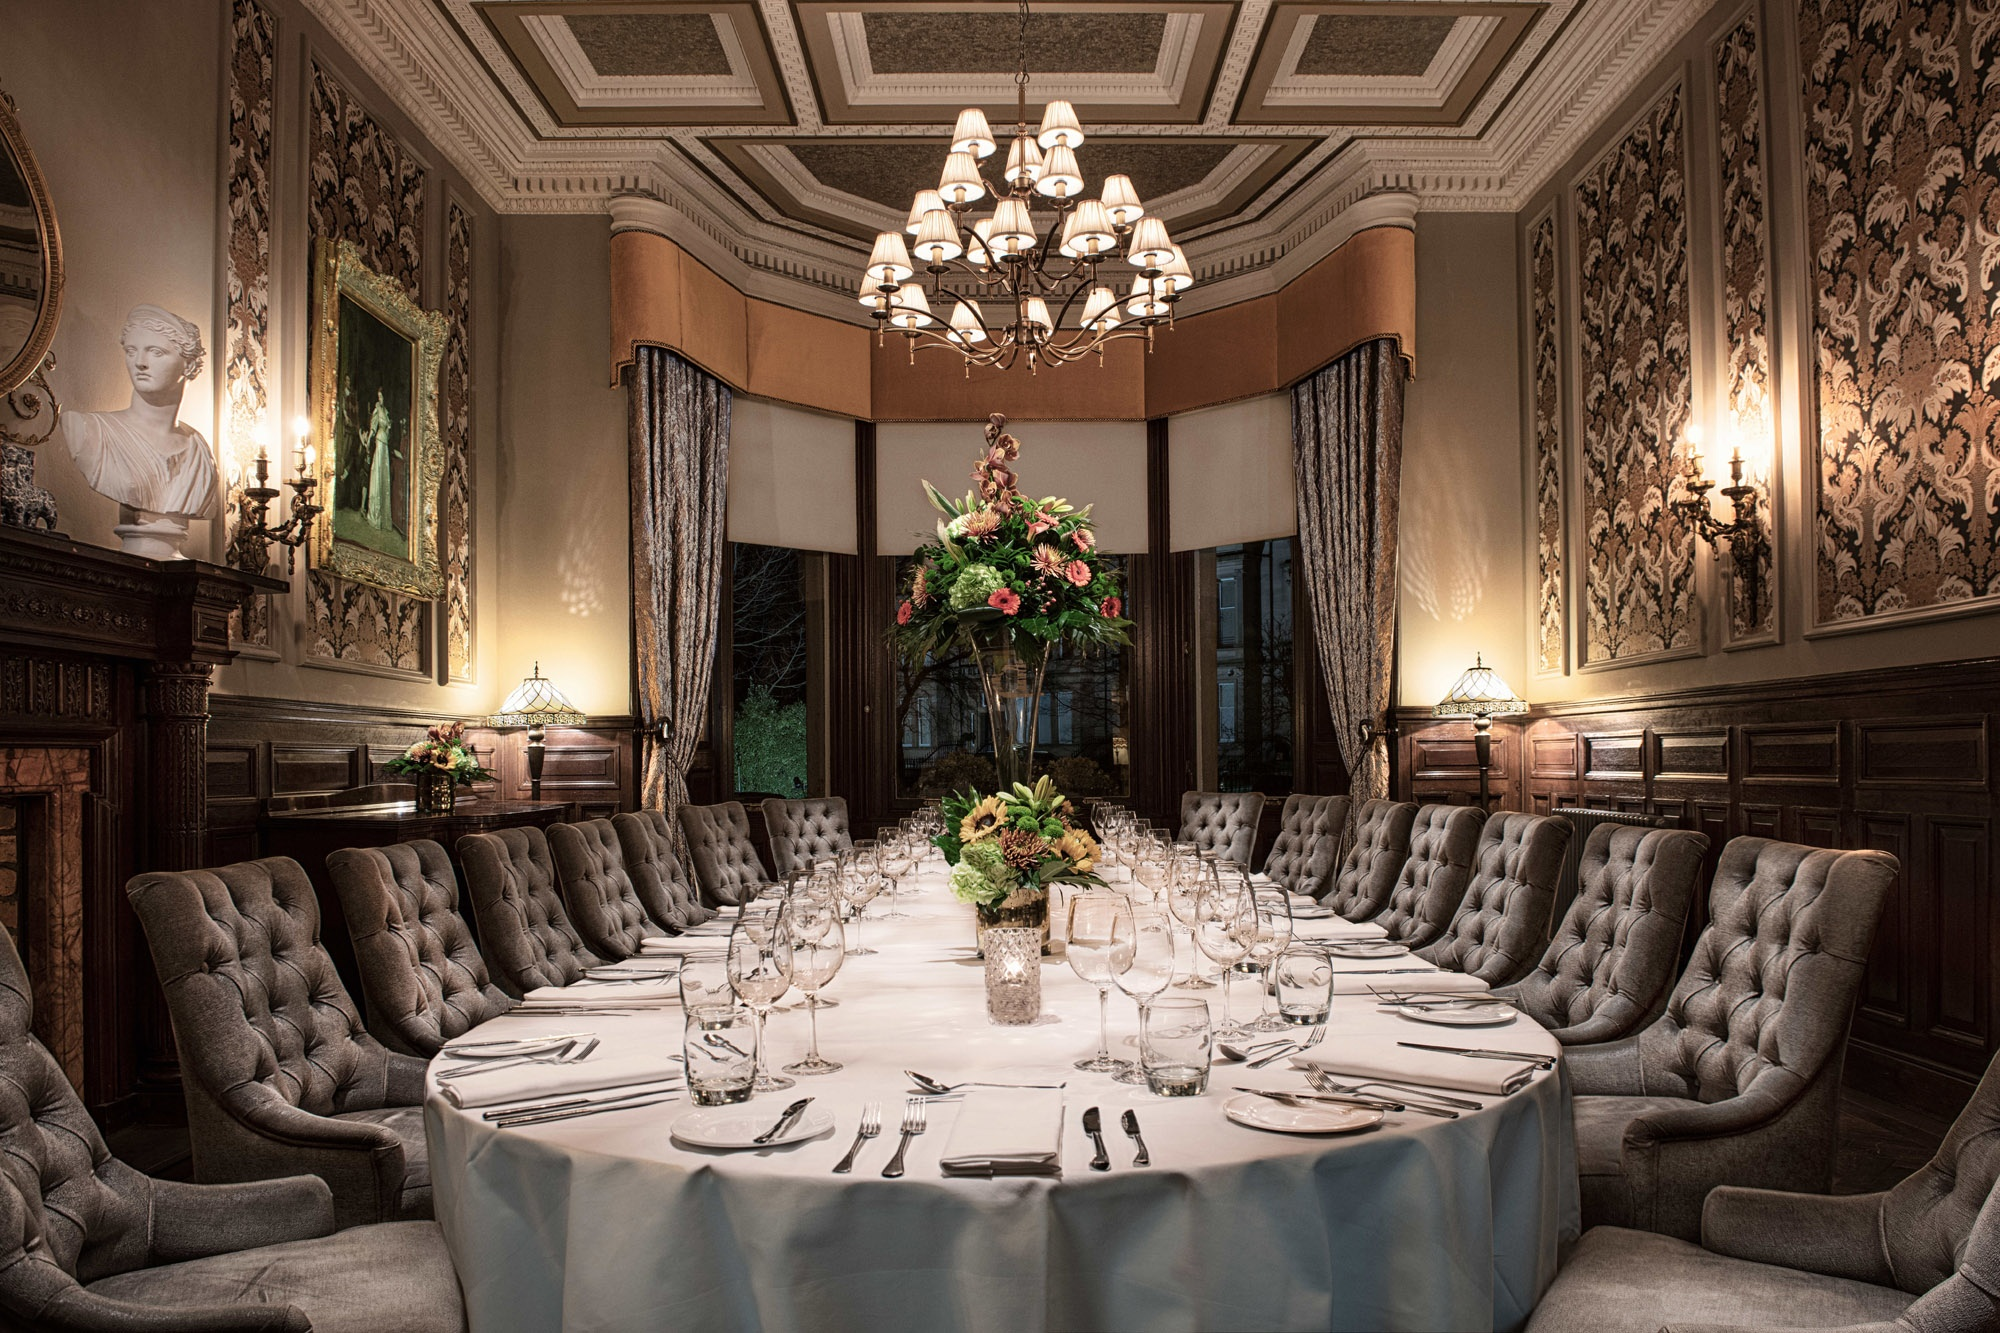 A private dining room for a murder mystery event at the Bonham Hotel in Edinburgh